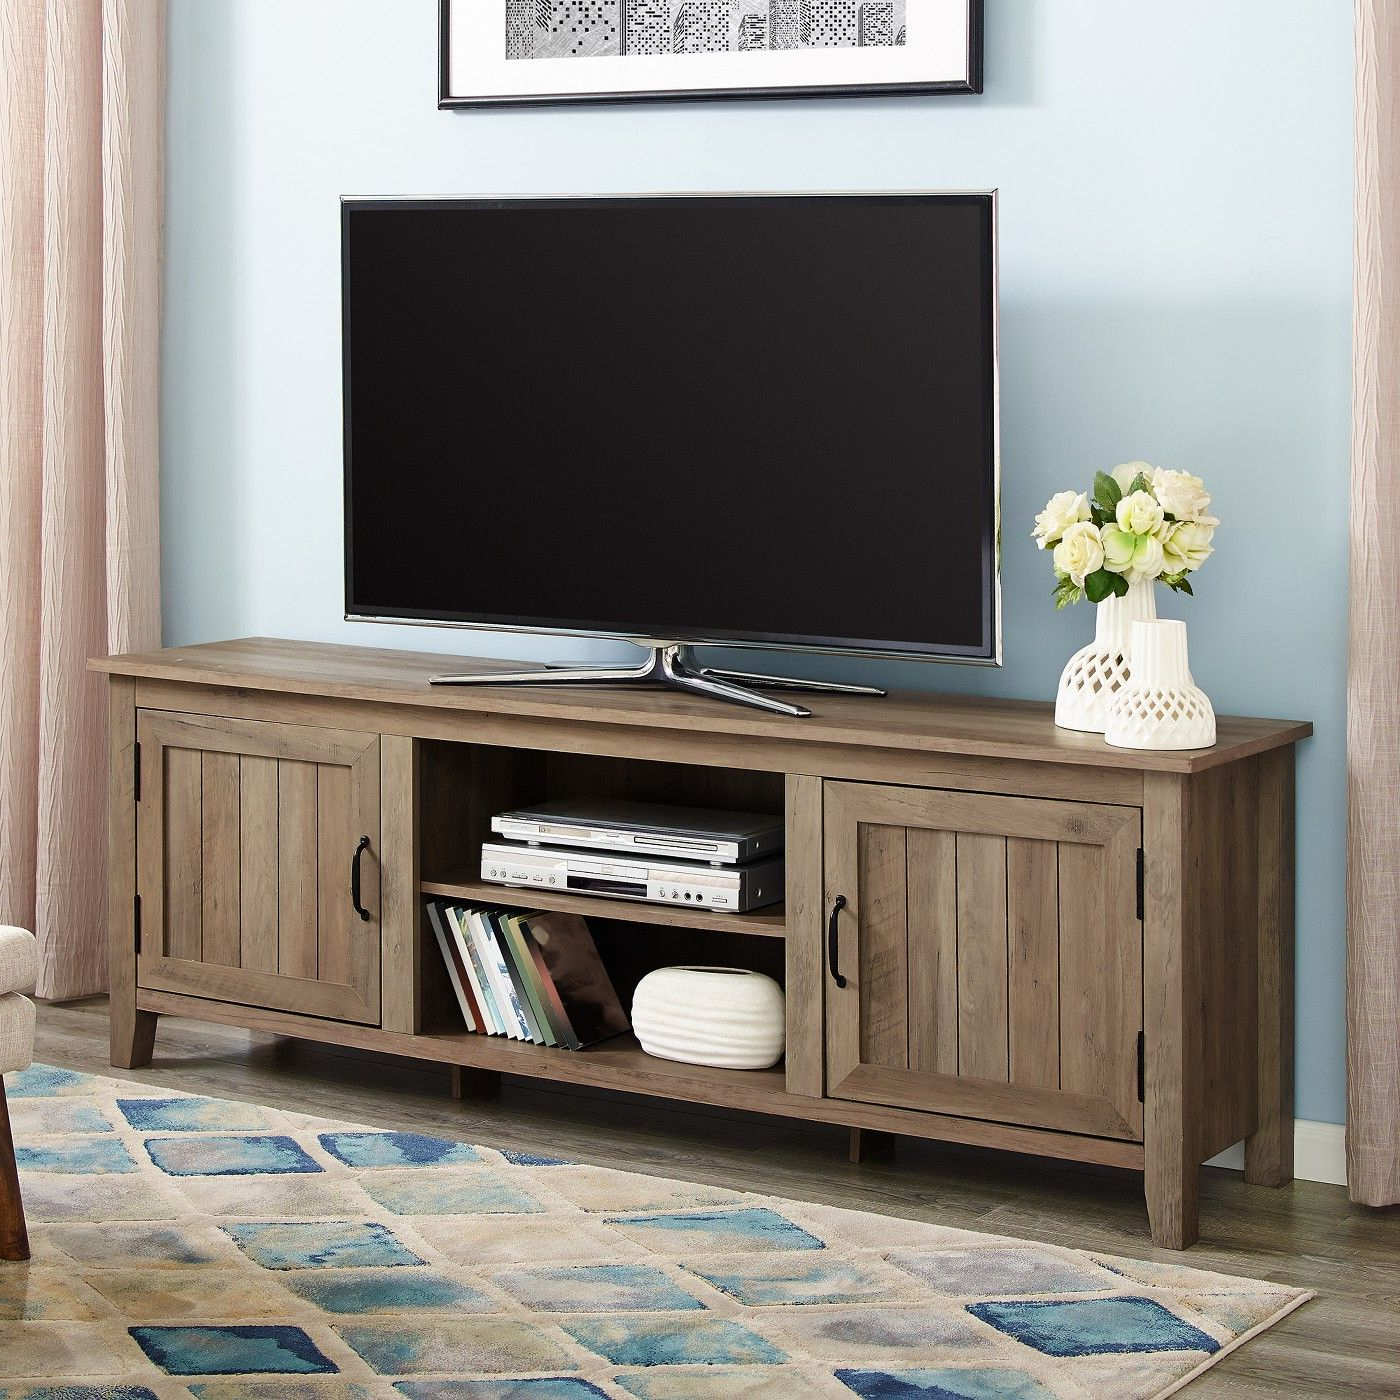 Modern Farmhouse Wood Tv Stand For Tvs Up To 80 Intended For Modern Farmhouse Tv Stands (View 17 of 31)